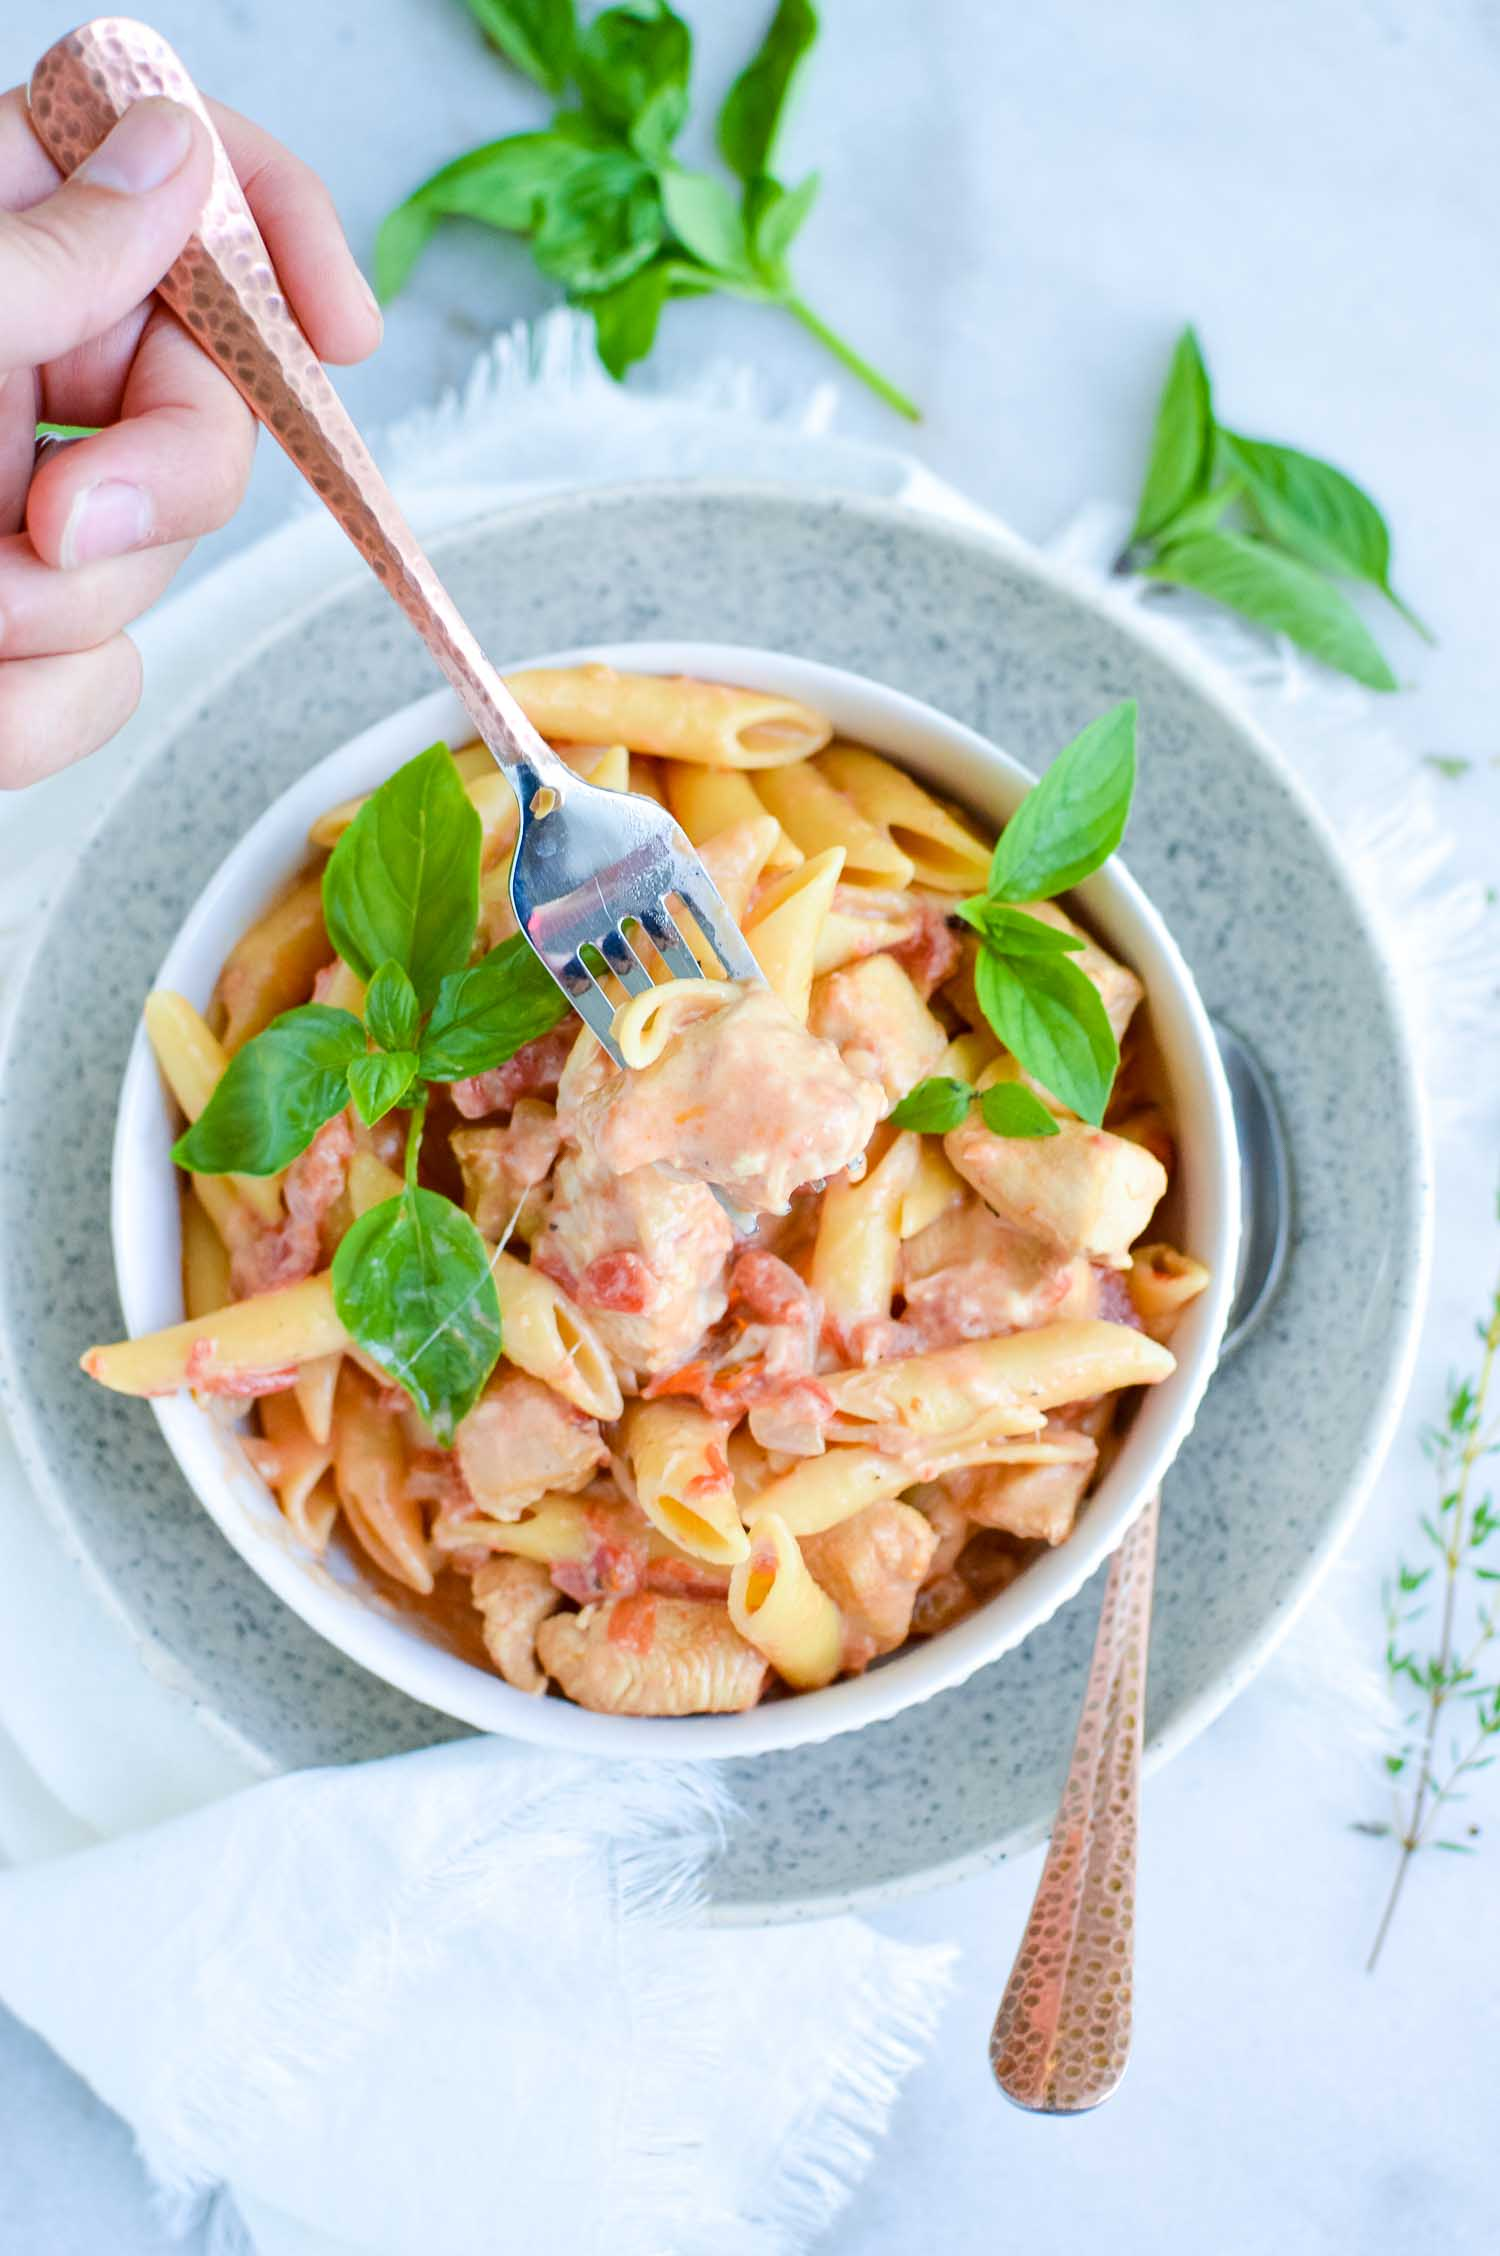 A white bowl inside a speckled bowl full of pasta, cheese, tomatoes and spices with a silver fork in it spearing chicken and a spoon on the side of it with fresh basil around the bowls.